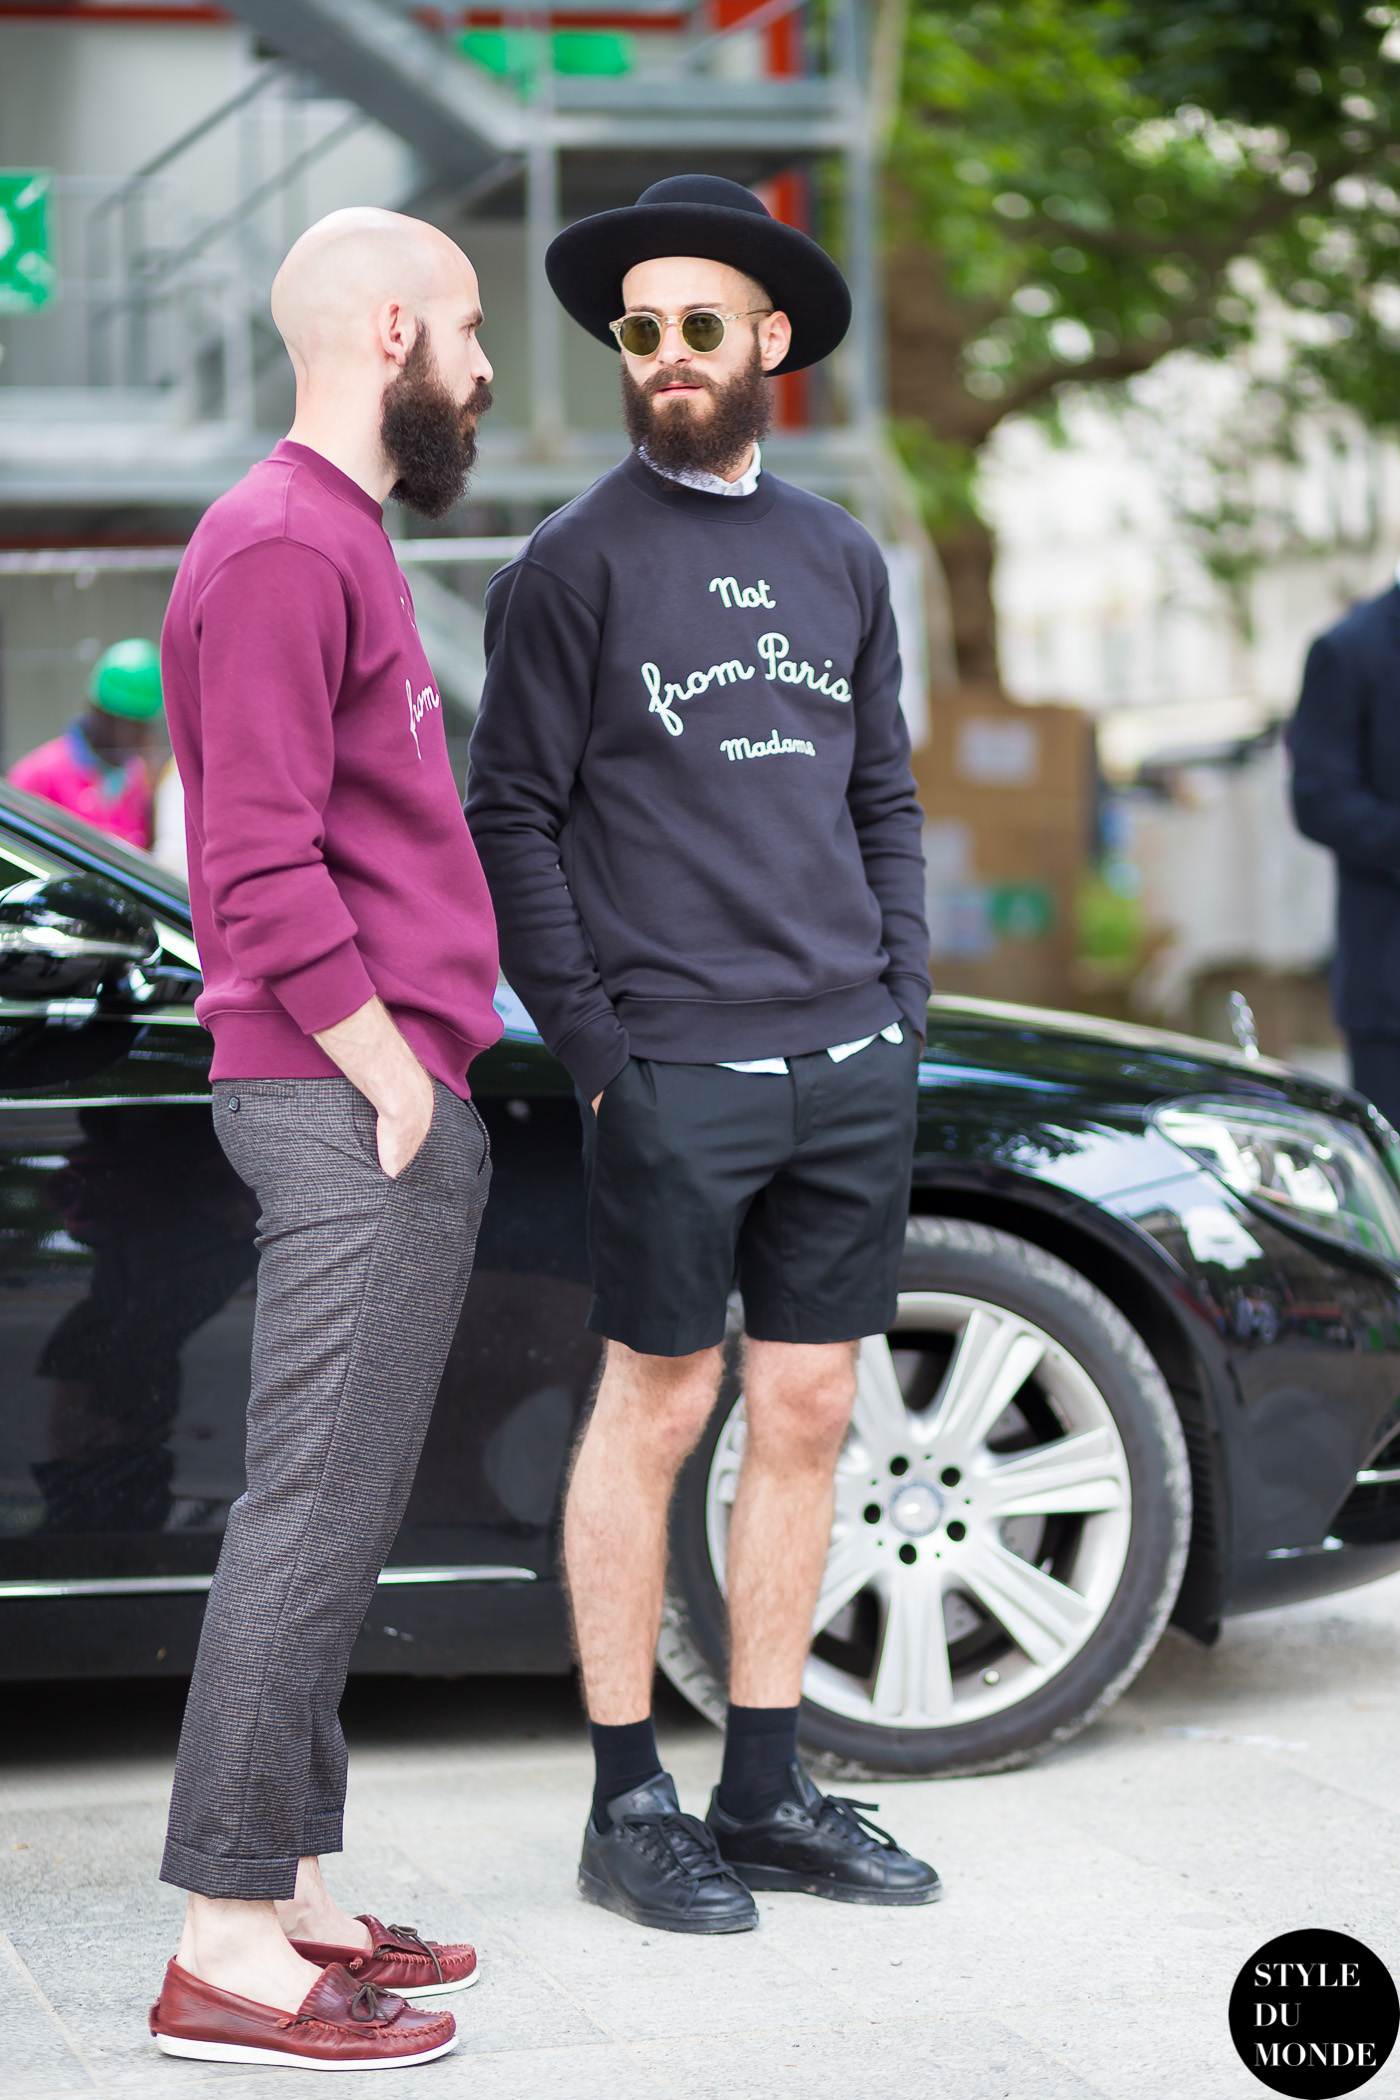 Maxime Schawb and Danny Dos Santos Street Style Street Fashion Streetsnaps by STYLEDUMONDE Street Style Fashion Blog